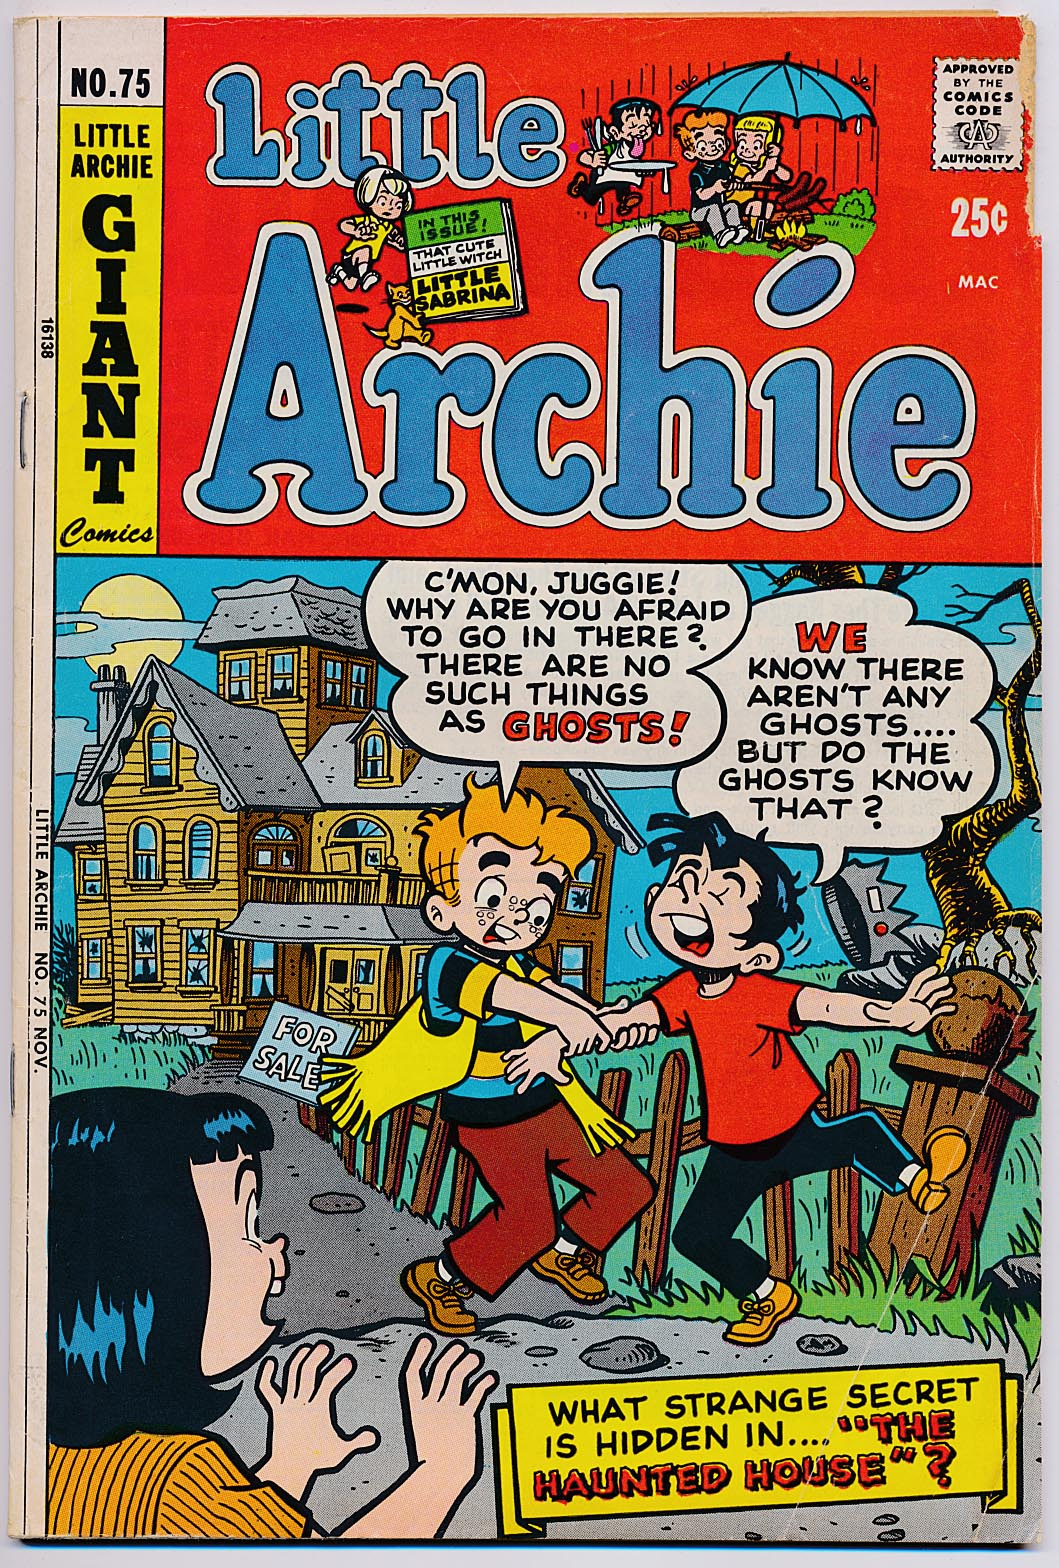 Little Archie 75 (Giant) -VG